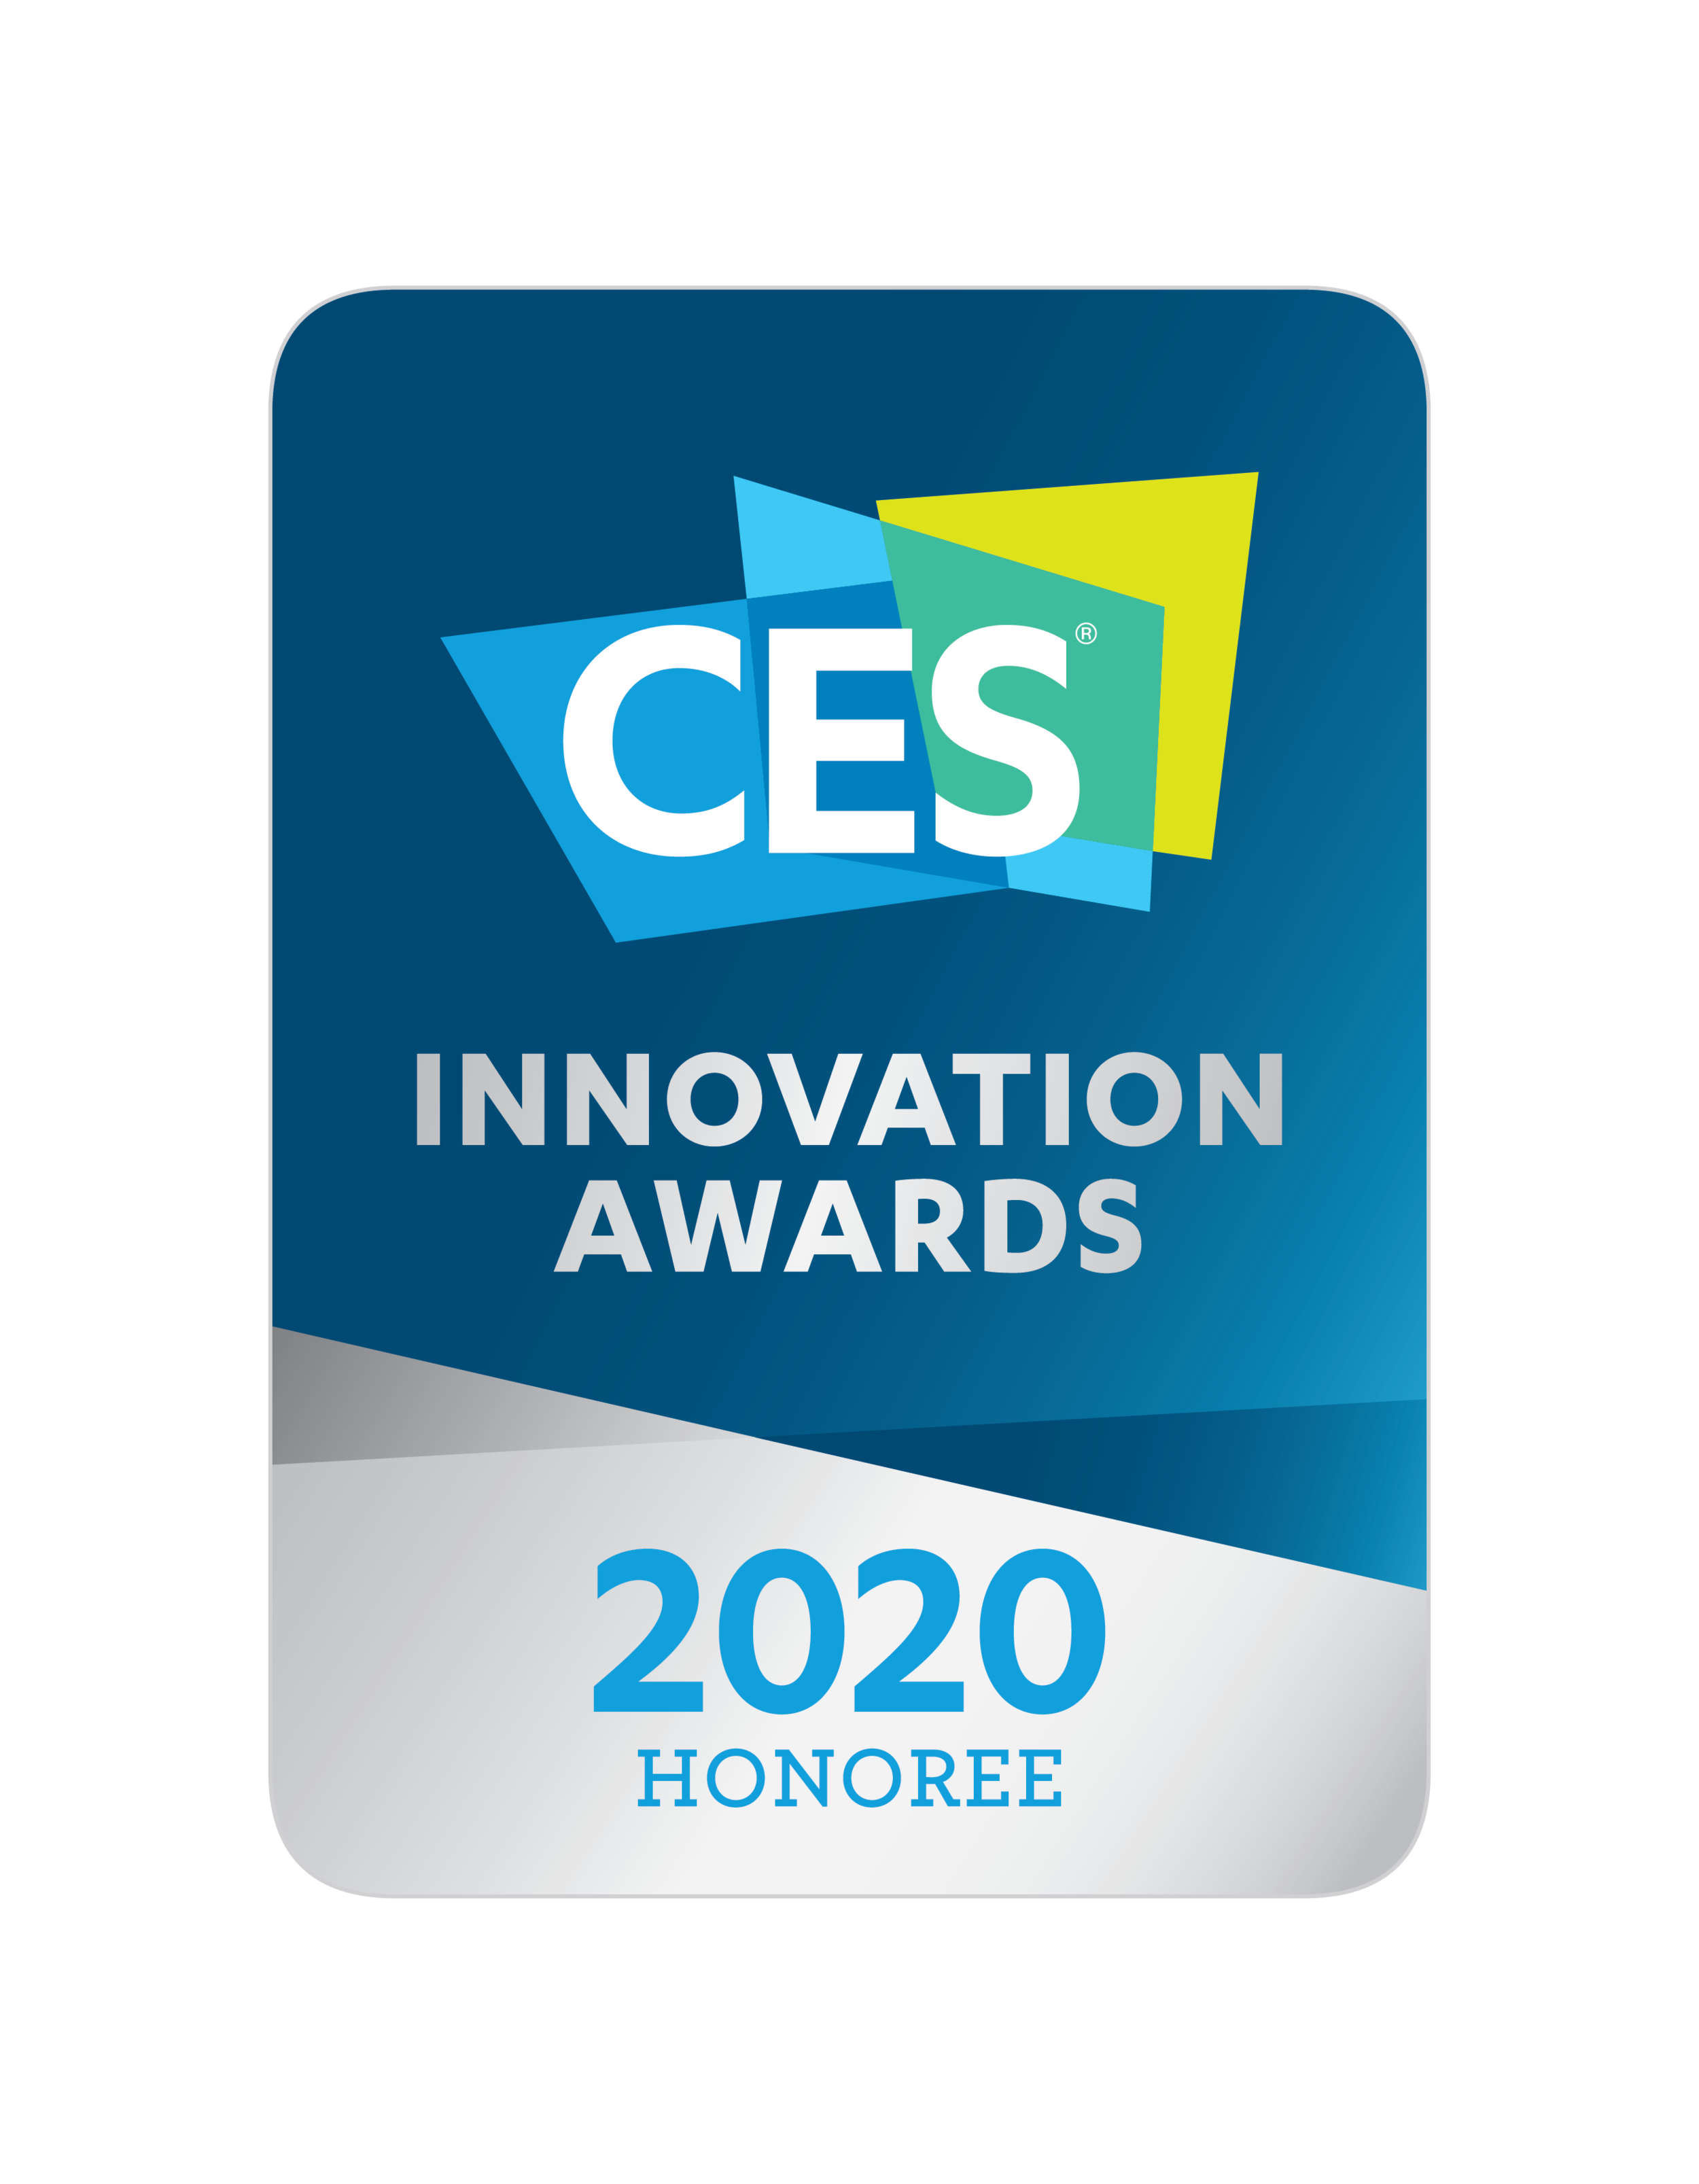 ces2020-innovation-award-honoree-recipient.png